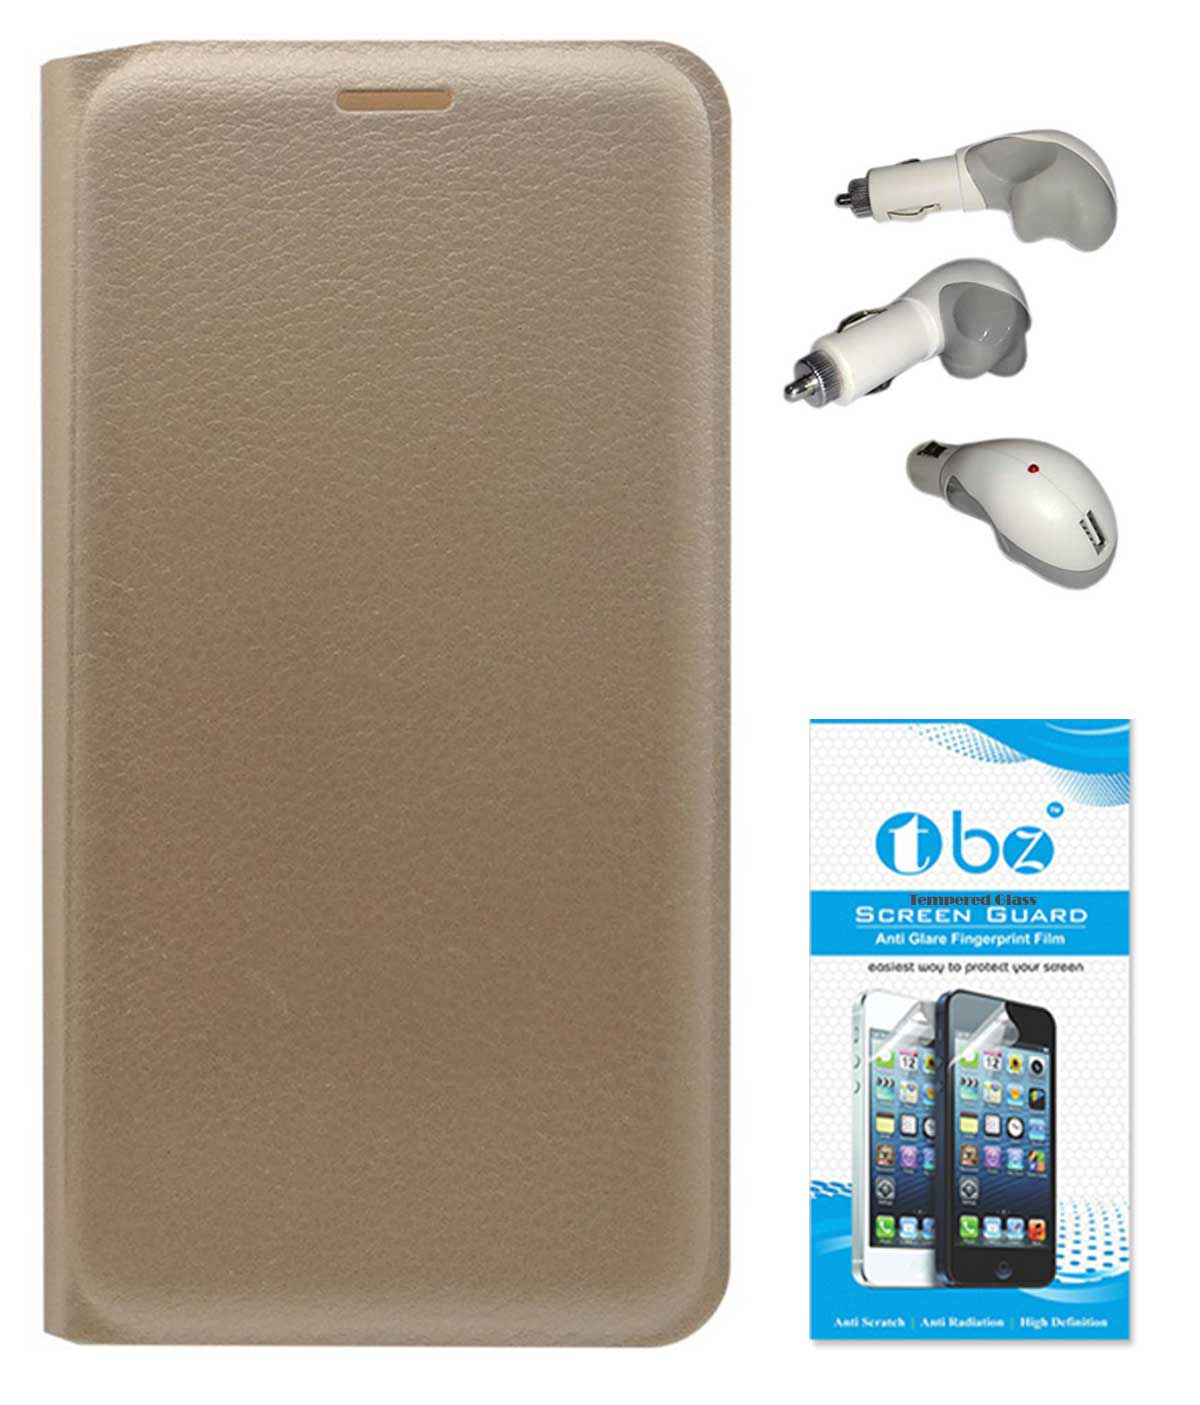 TBZ PU Leather Flip Cover Case for Oppo Joy 3 with Car Charger and Tempered Screen Guard -Golden